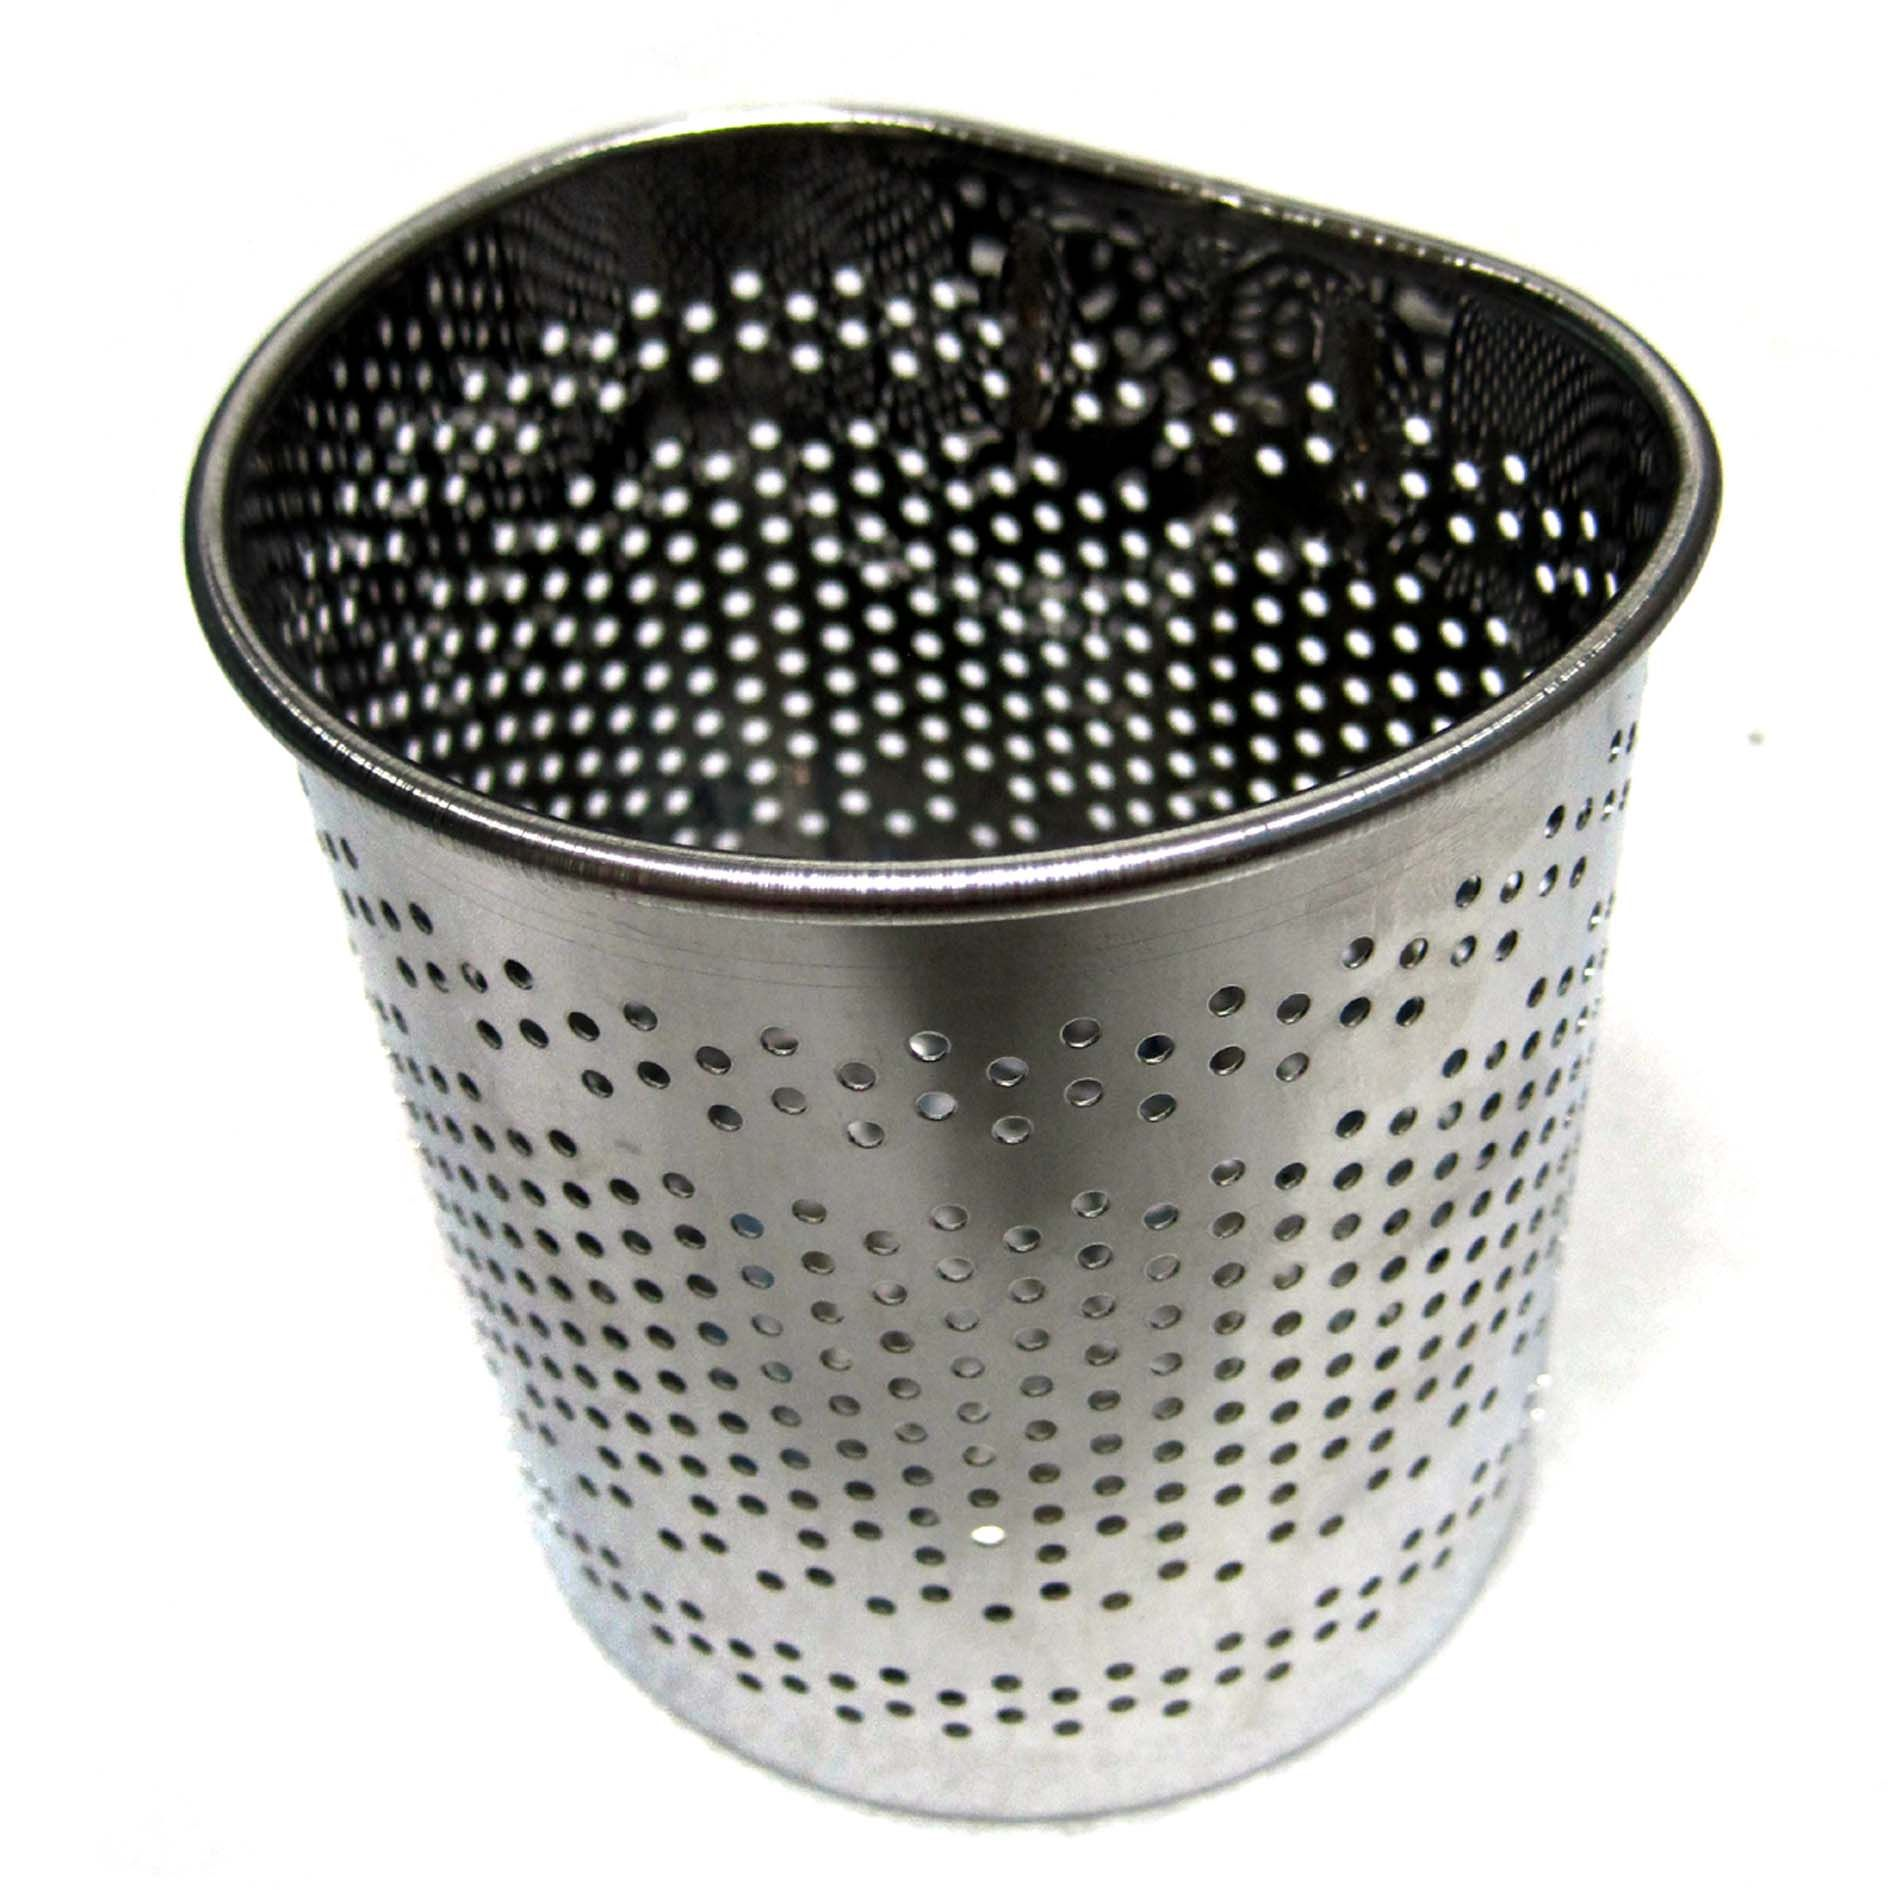 New Stainless Steel Perforated Half Circle Cutlery Holder